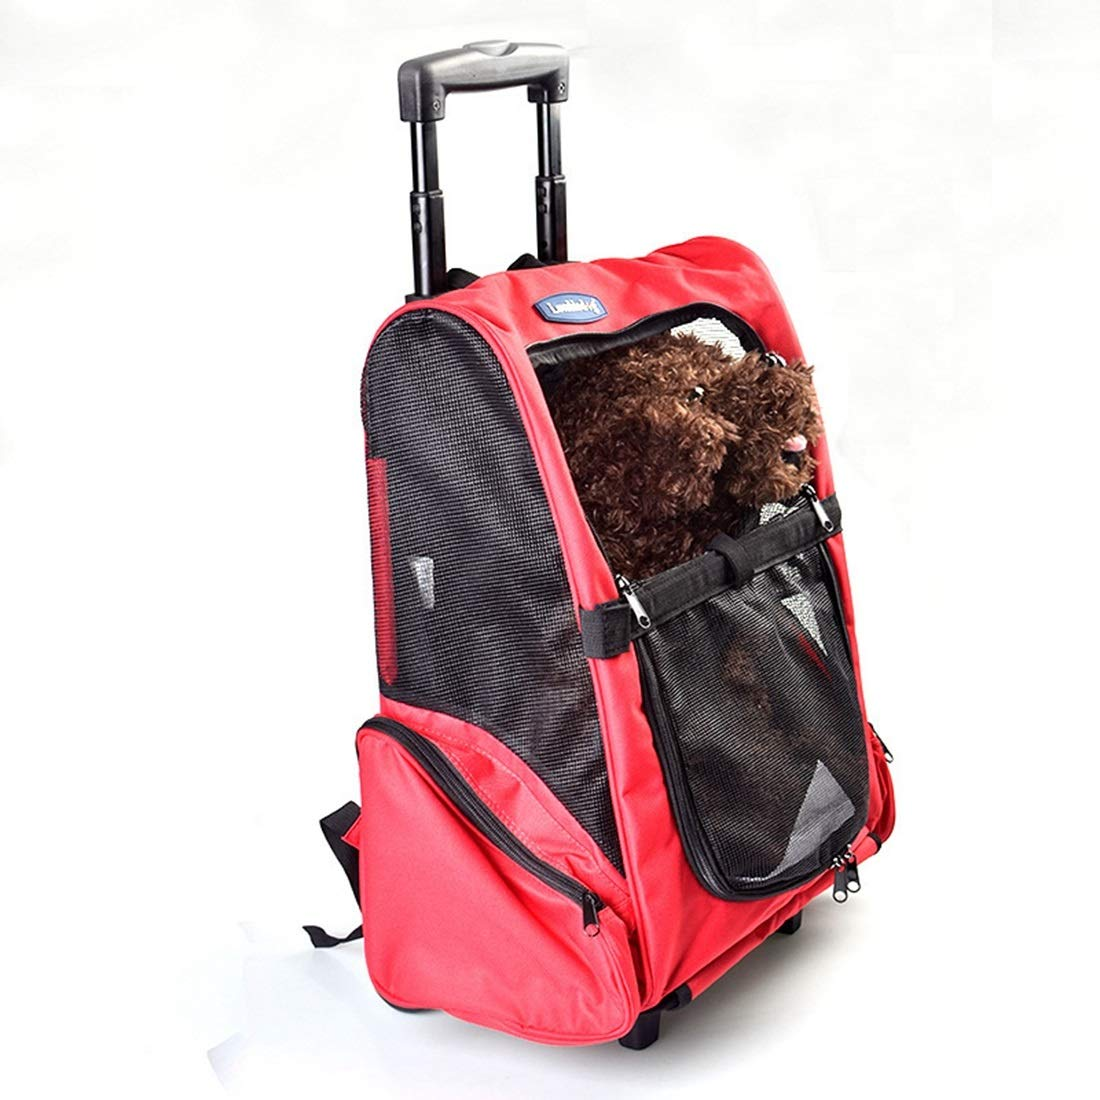 Red L44×W28×H50(100)cm Red L44×W28×H50(100)cm FELICIOO Pet Supplies Travel Trolley Pet Boxes Dog Travel Outdoor Carrying Bags (color   Red, Size   L44×W28×H50(100) cm)